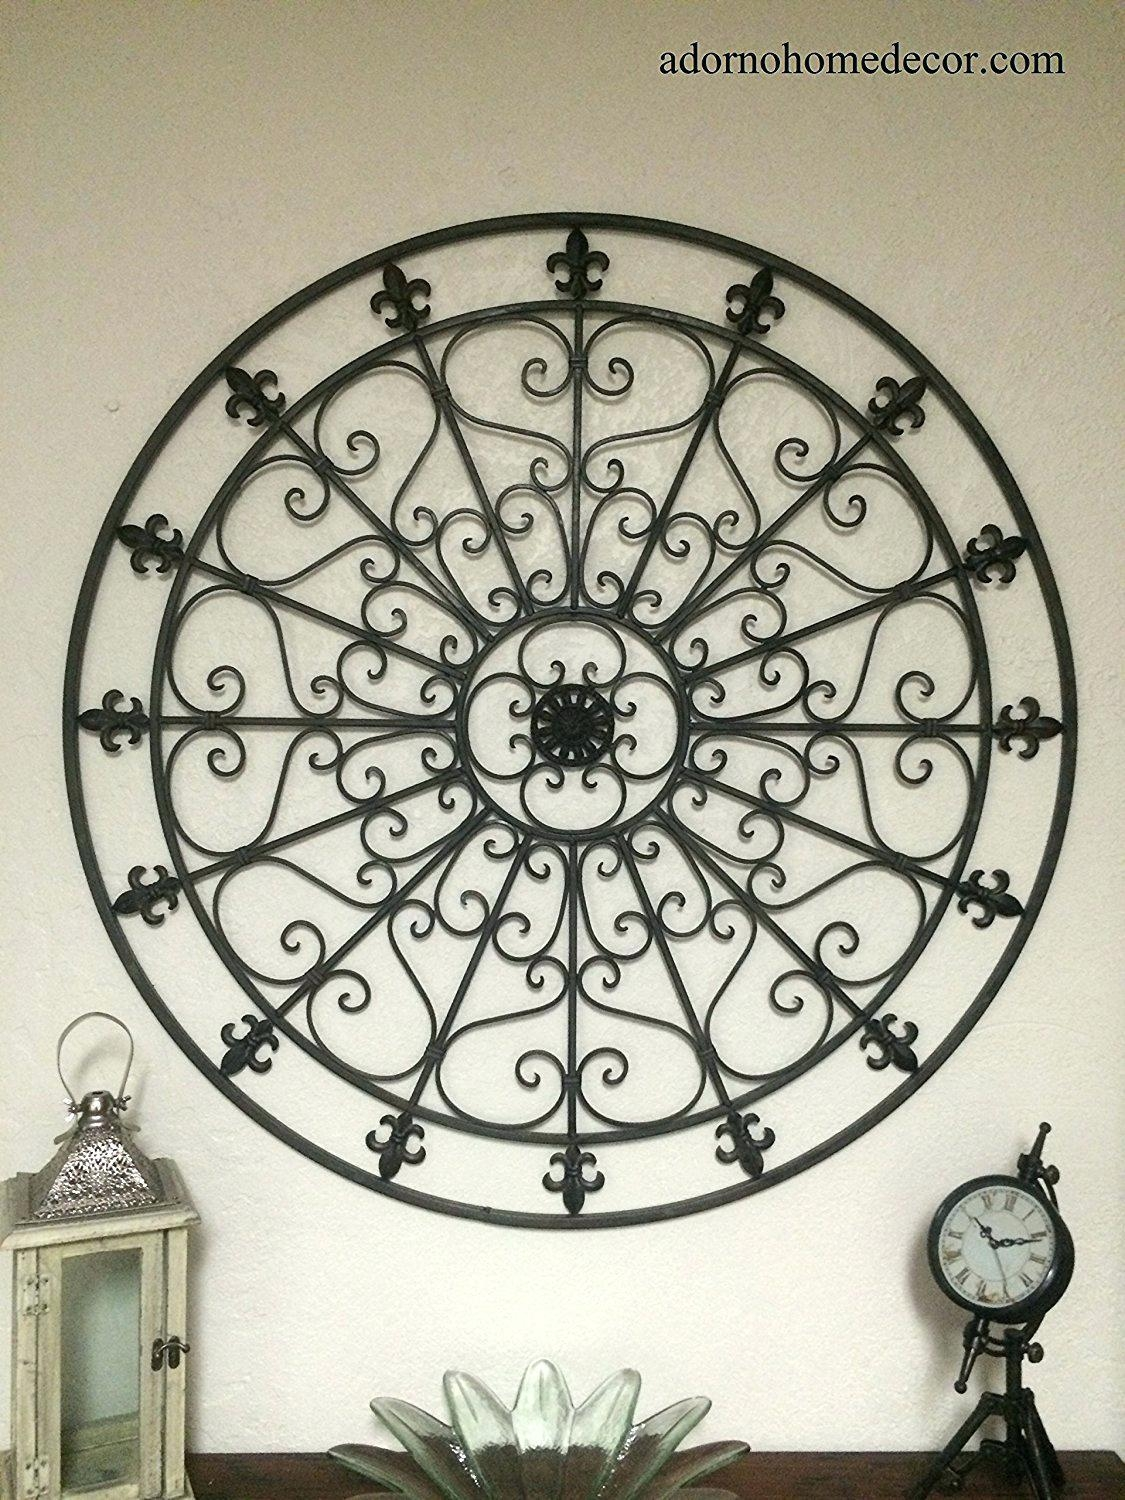 Wall Ideas : Iron Scroll Metal Wire Wall Medallion Hanging Art Throughout Large Round Metal Wall Art (View 14 of 20)